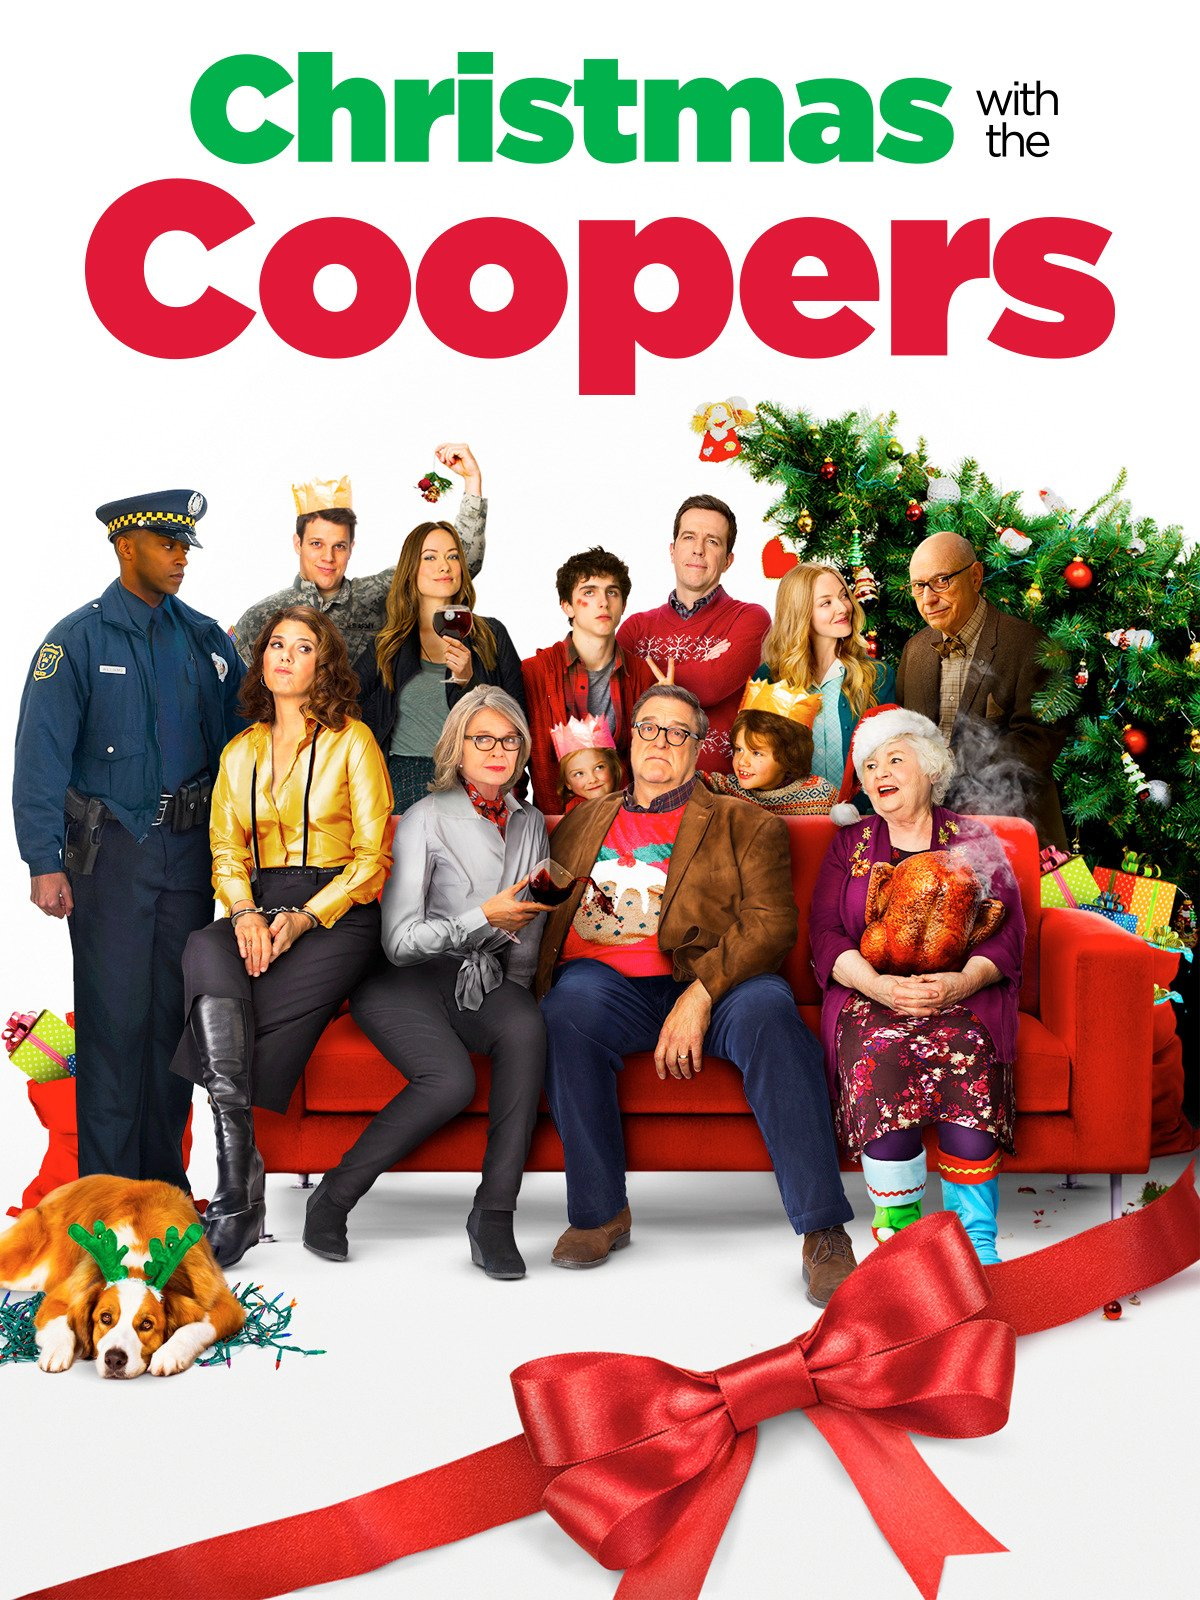 Amazon.co.uk: Watch Christmas with the Coopers   Prime Video